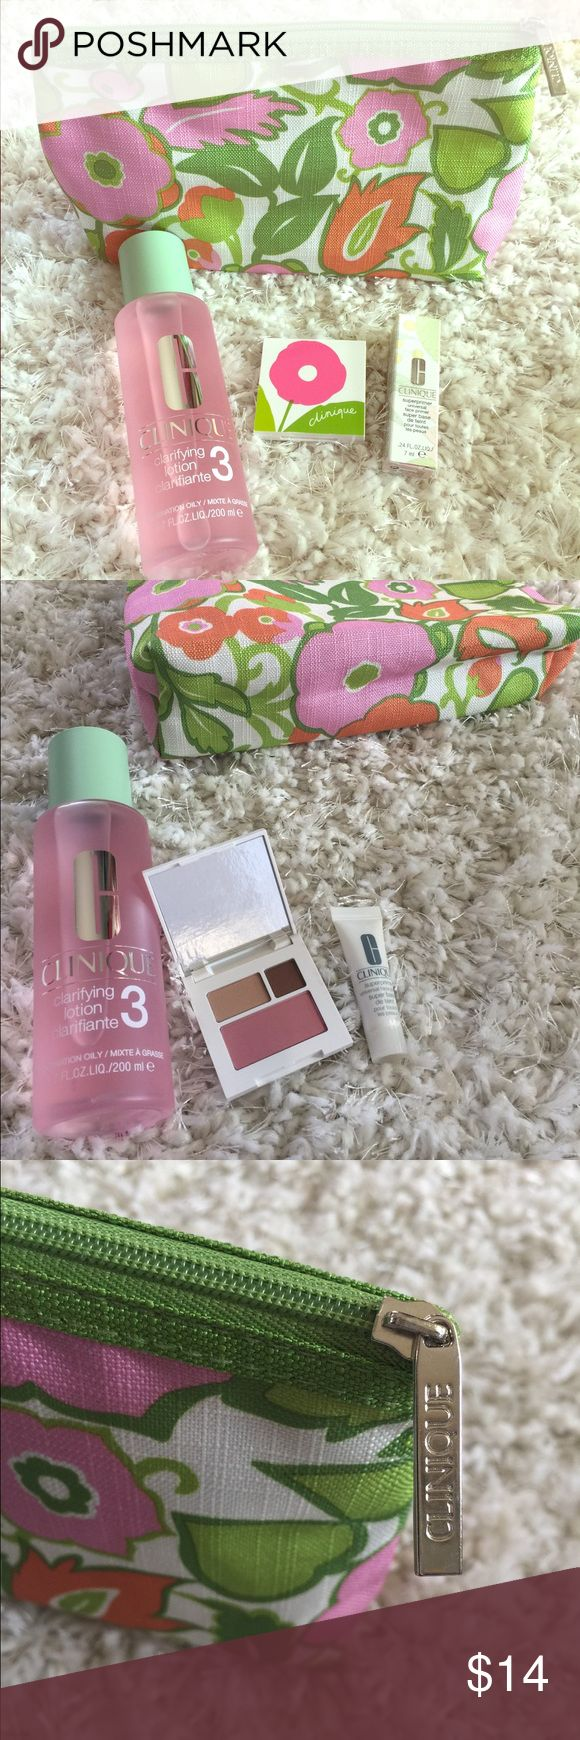 Clinique Set 💋🌸 Clinique travel makeup bag. 6.7 FL. OZ